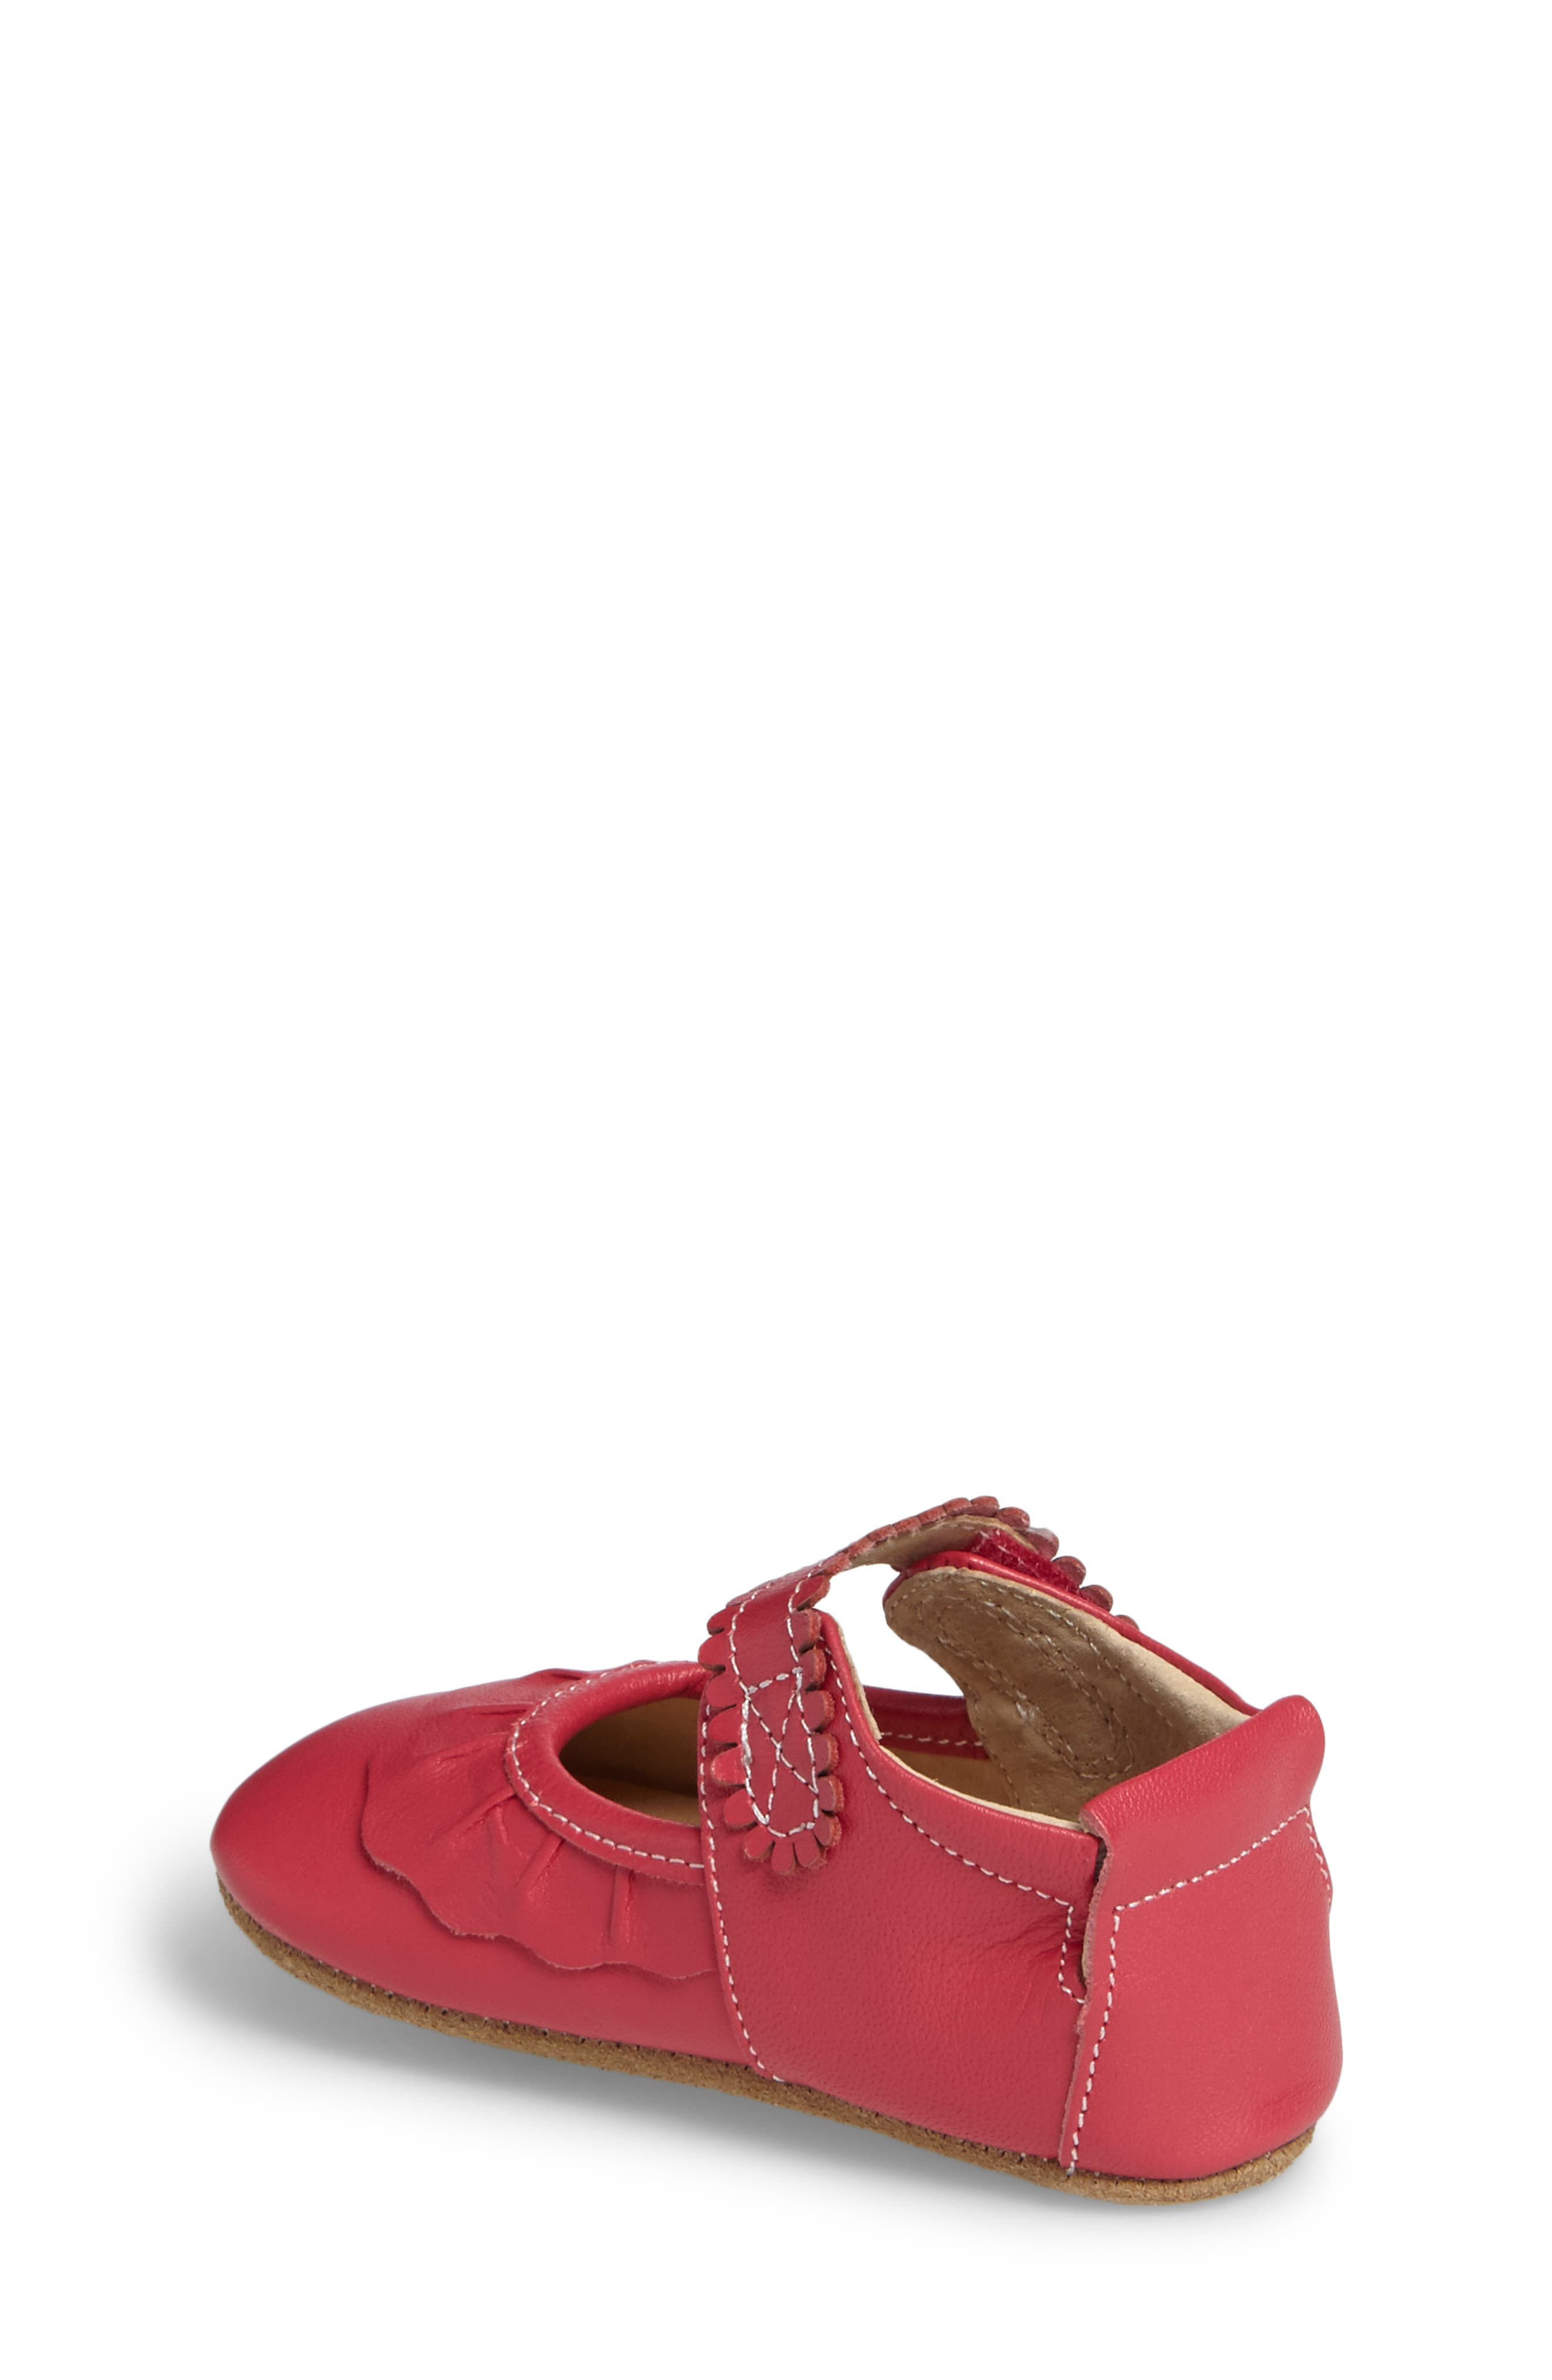 'Ruche' Mary Jane Crib Shoe,                             Alternate thumbnail 2, color,                             Hot Pink Leather